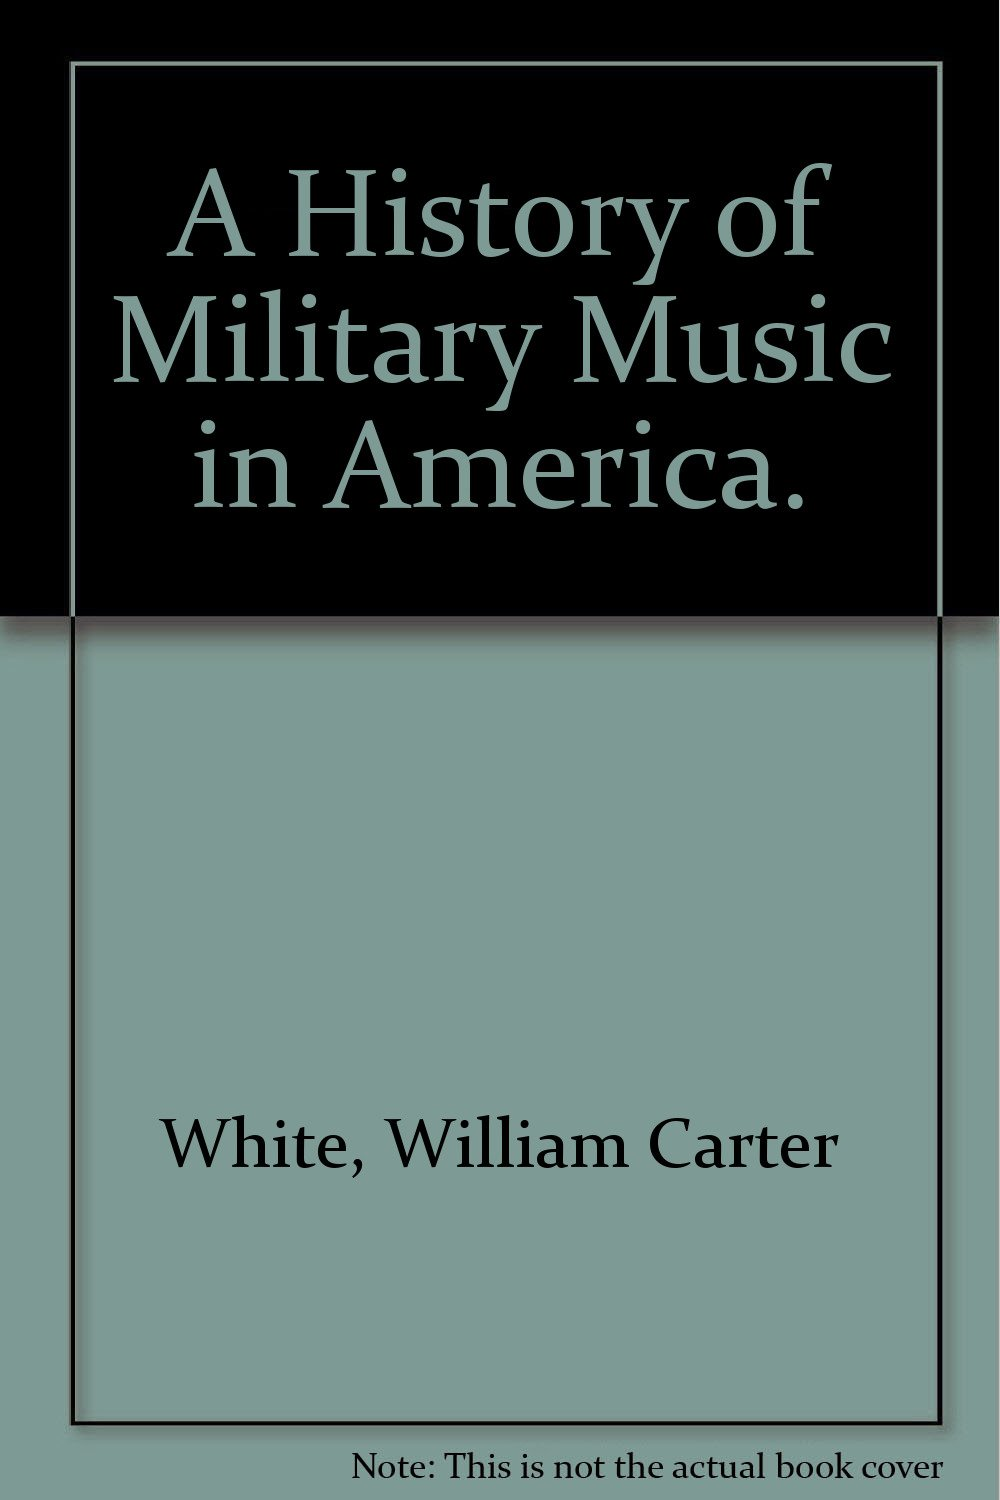 A History of Military Music in America.